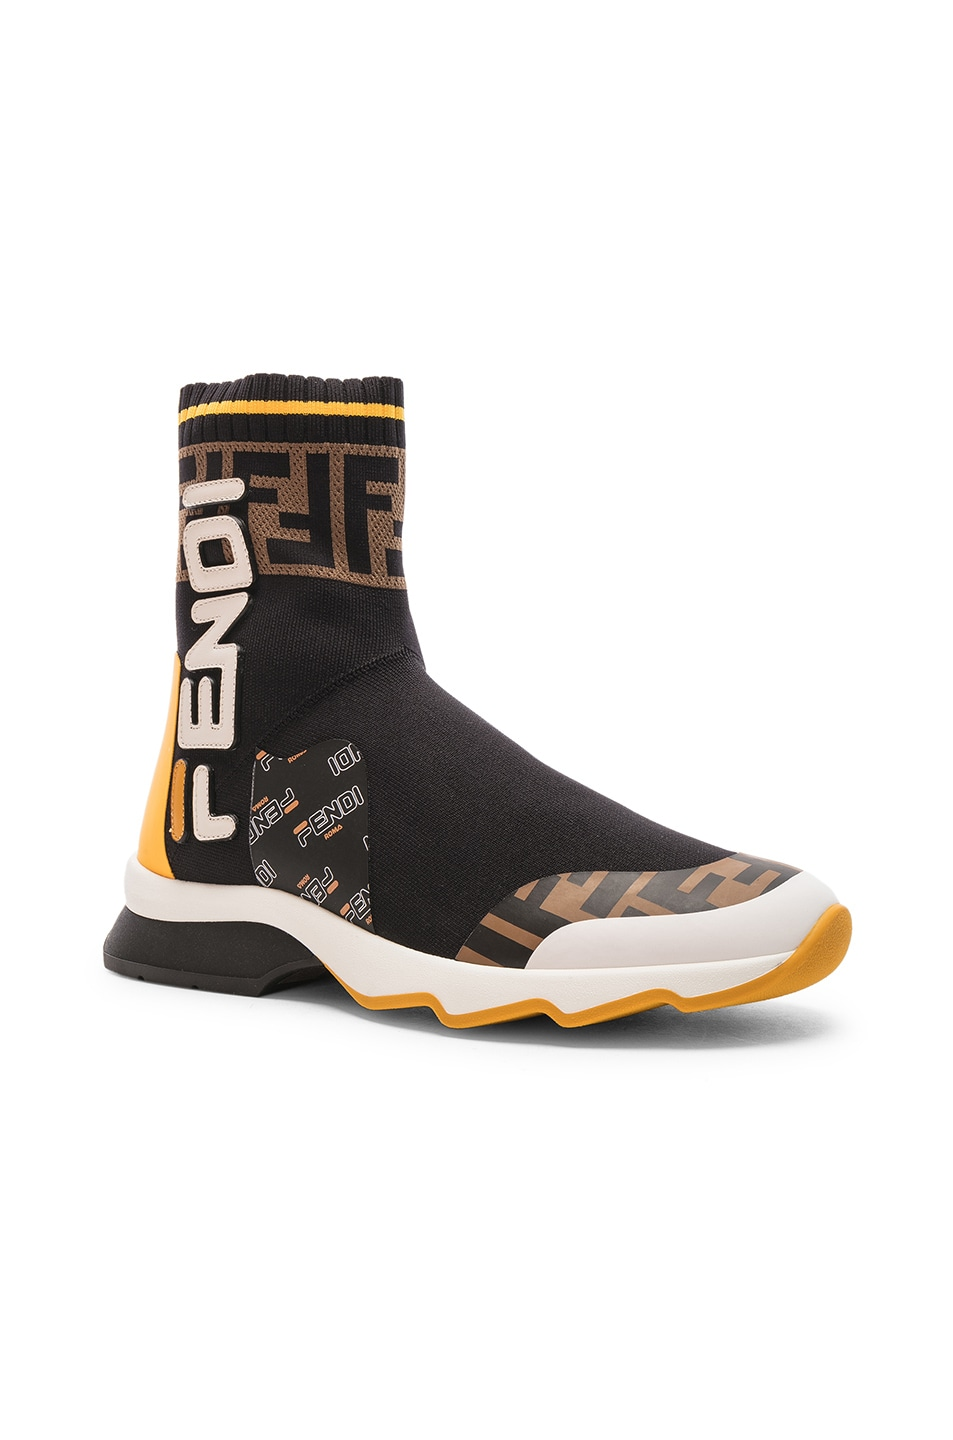 Image 2 of Fendi x FILA Sock Sneakers in Black & Multicolor